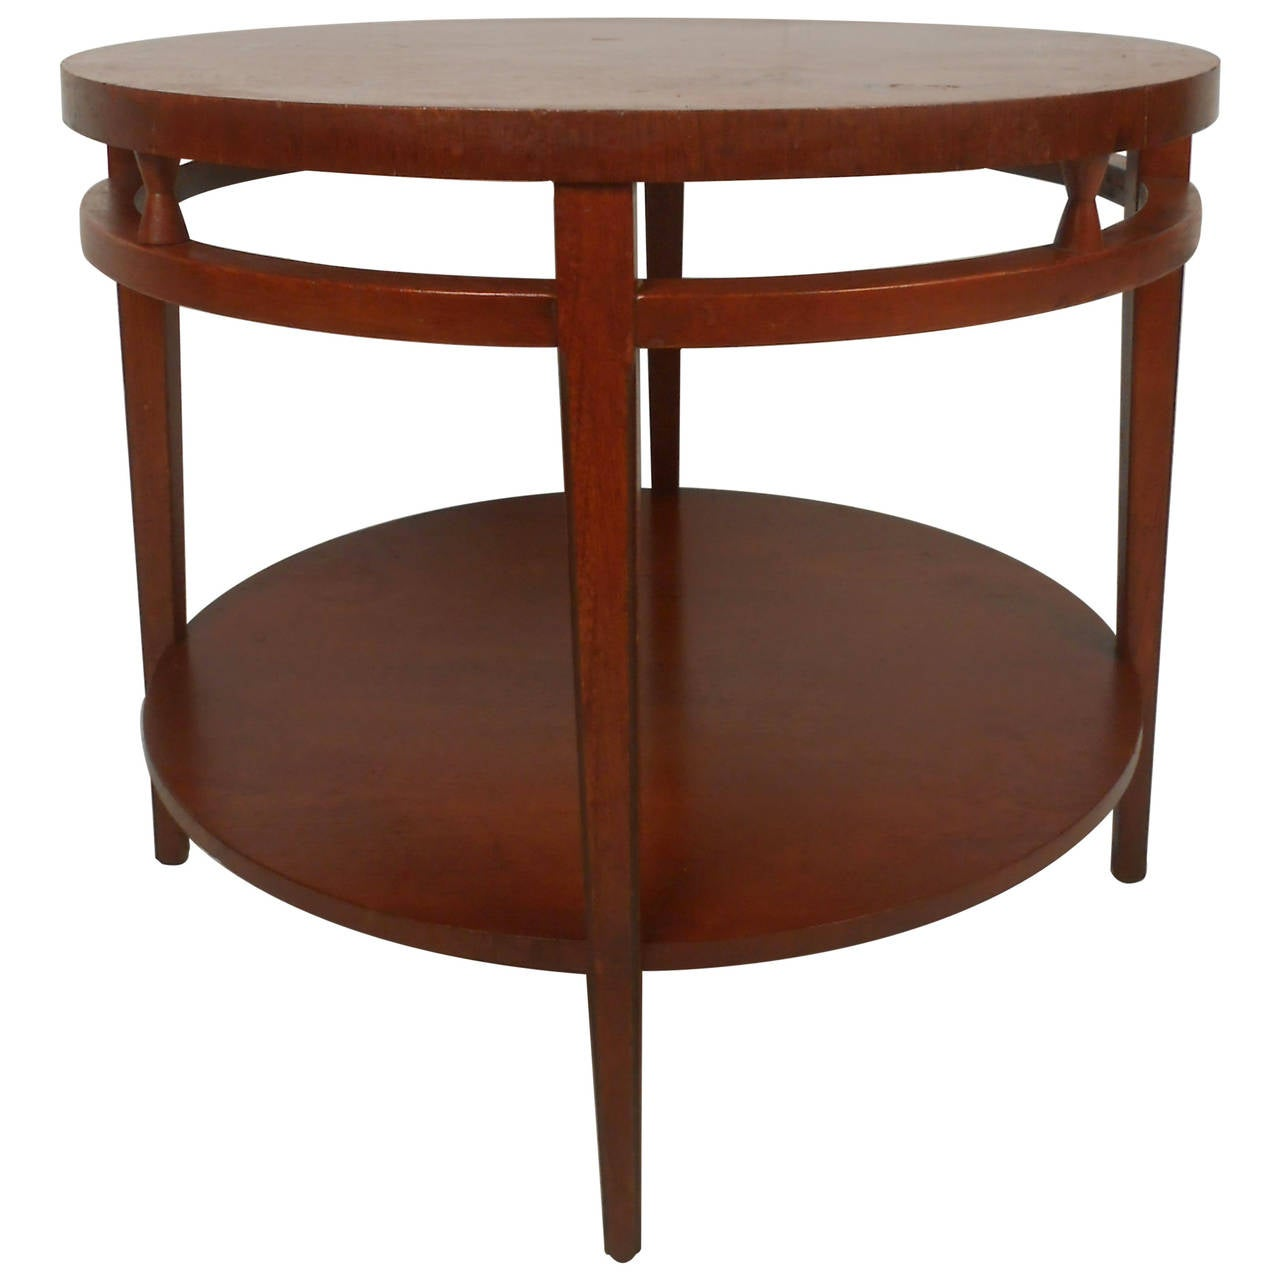 Midcentury Lane Style Two Tier Round Coffee Table For Sale At 1stdibs